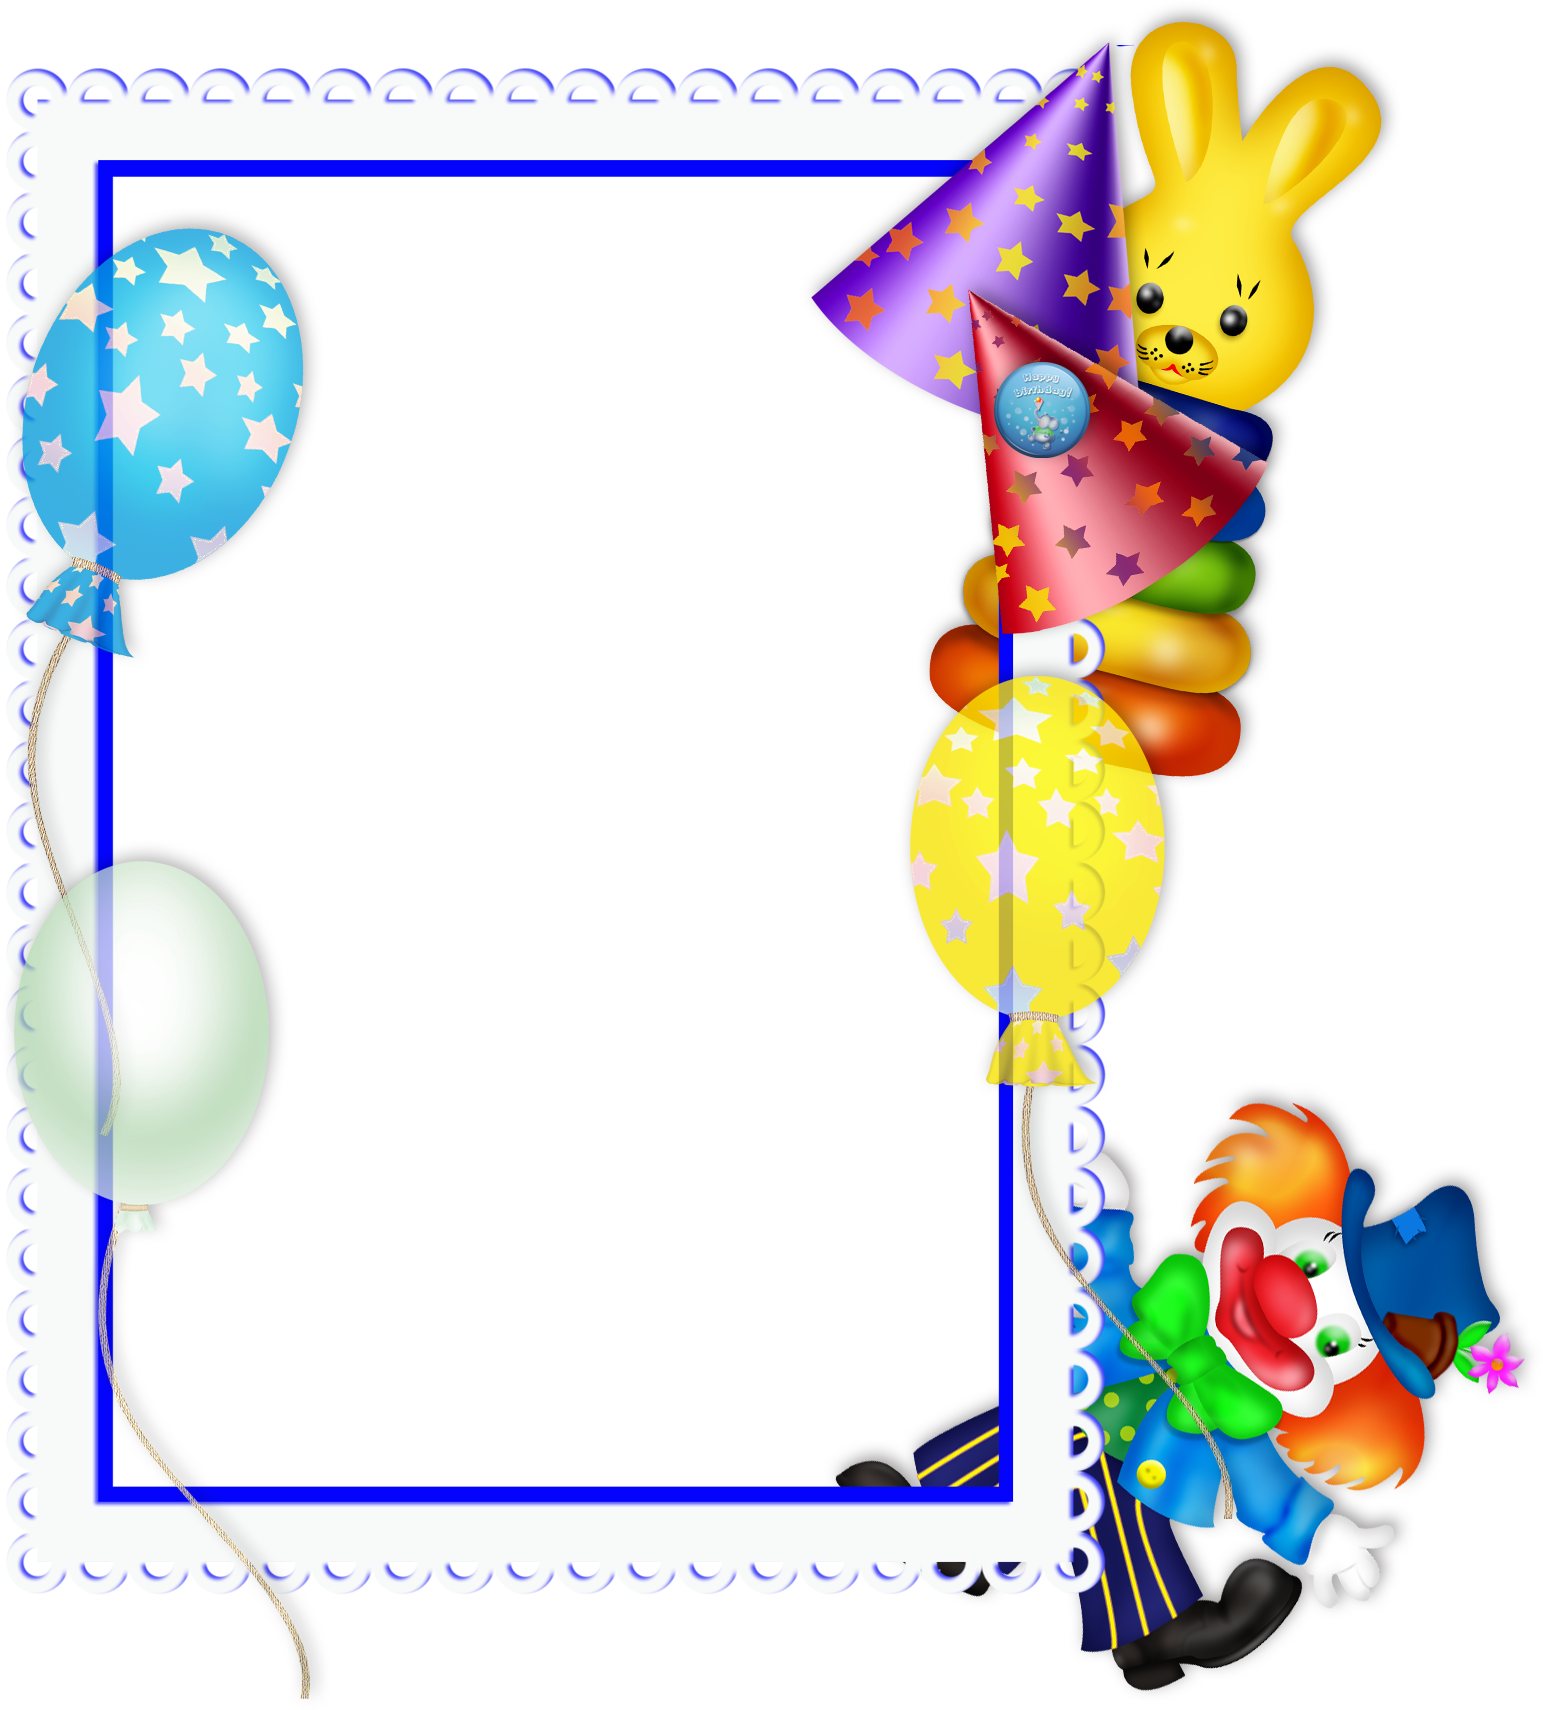 Birthday Free Transparent - Happy Birthday Theme Png (550x600), Png Download